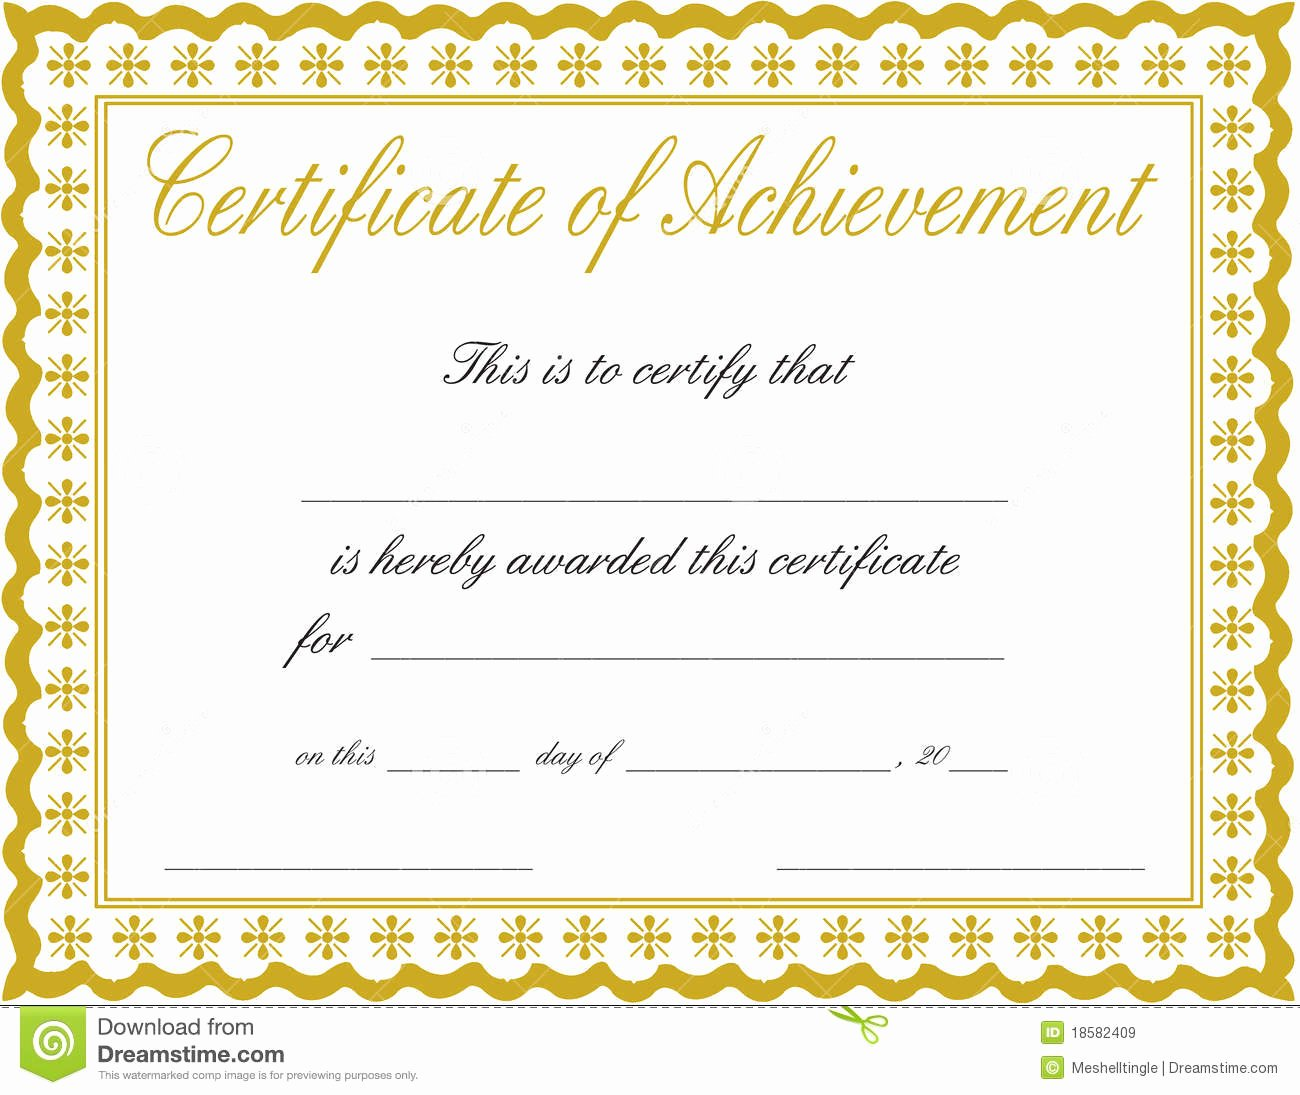 Certificate Of Accomplishment Template New Docx Achievement Certificates Templates Free Certificate